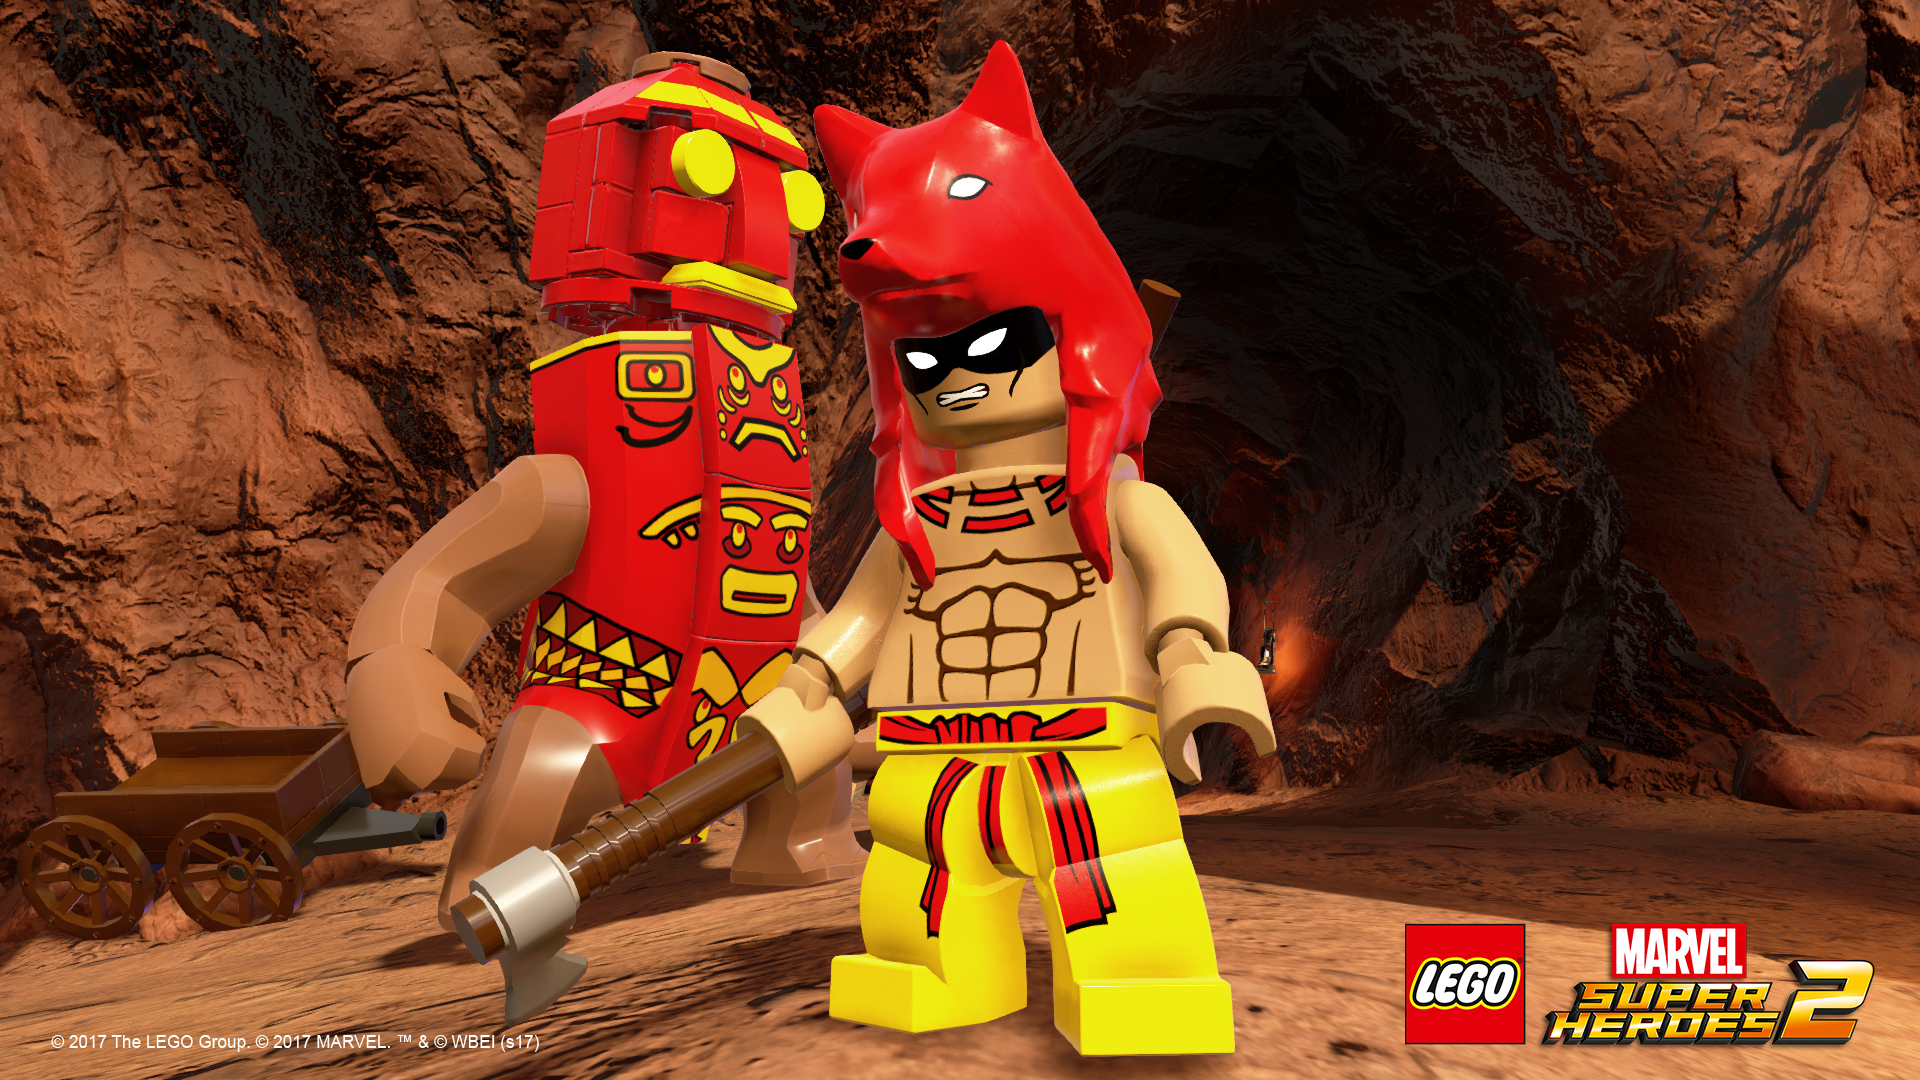 LEGO_Marvel_Super_Heroes_2_-_Red_Wolf_Living_Totem_1507794999